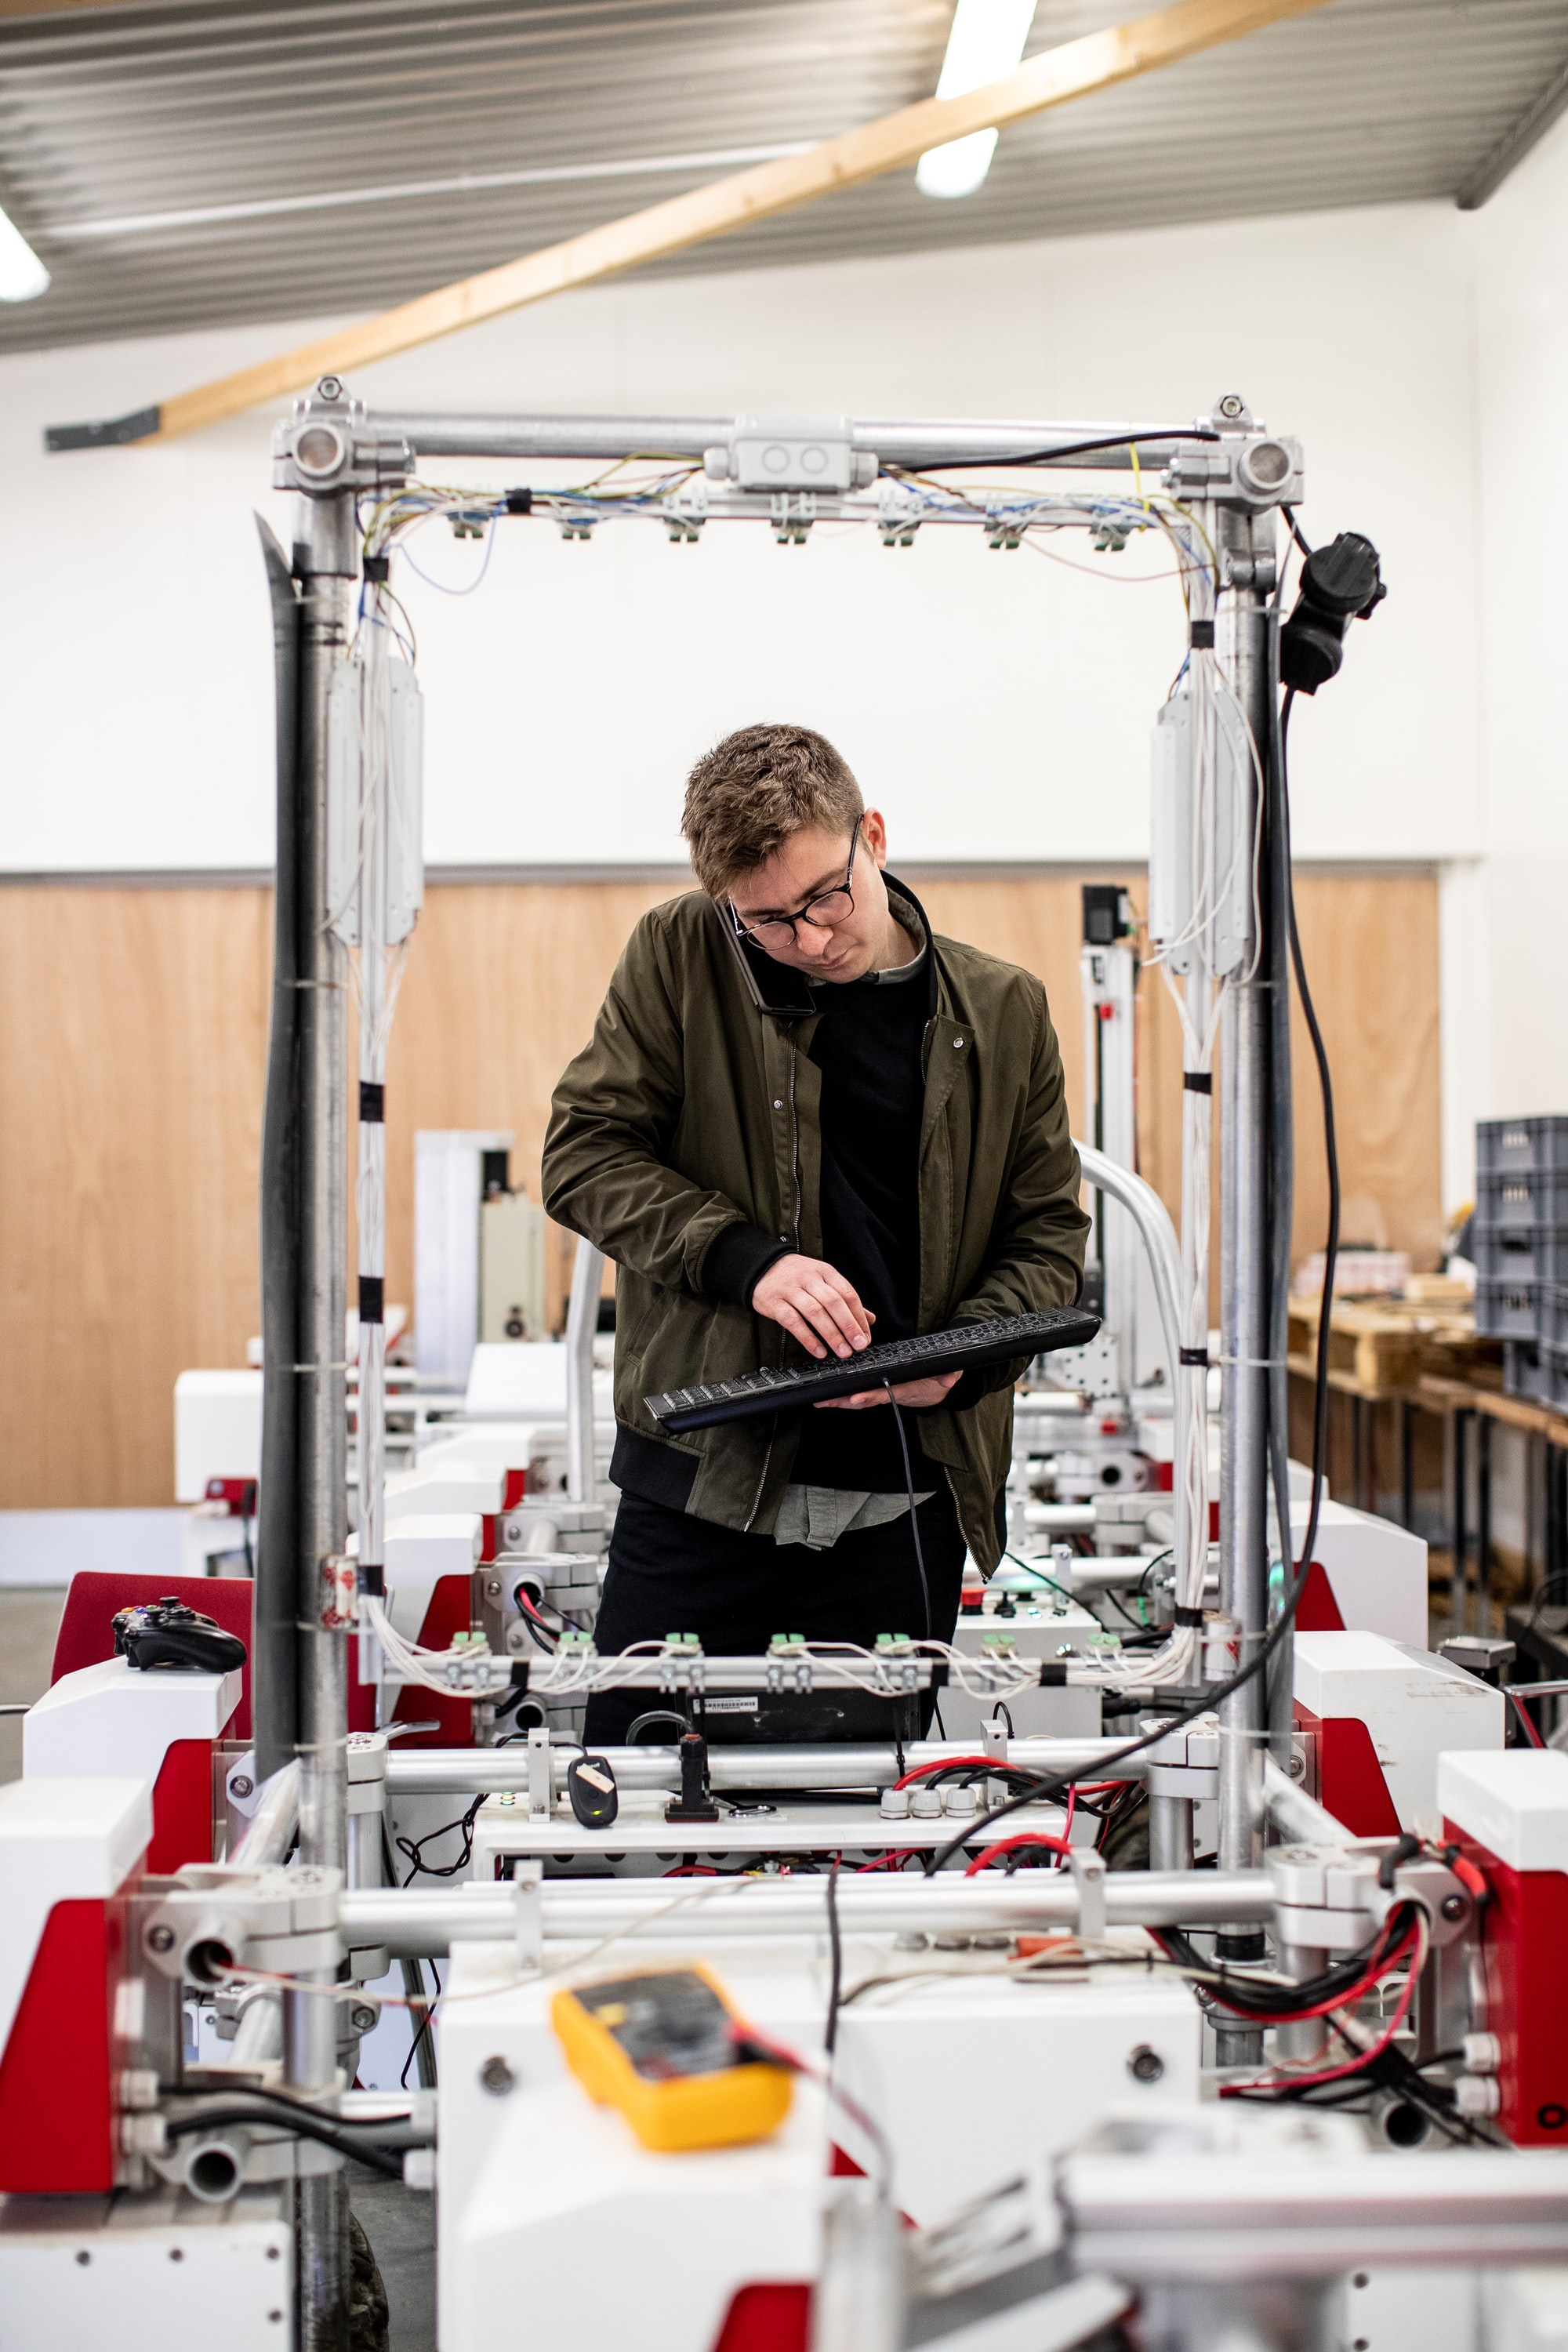 What are the Obstacles for Robotics in 2021?